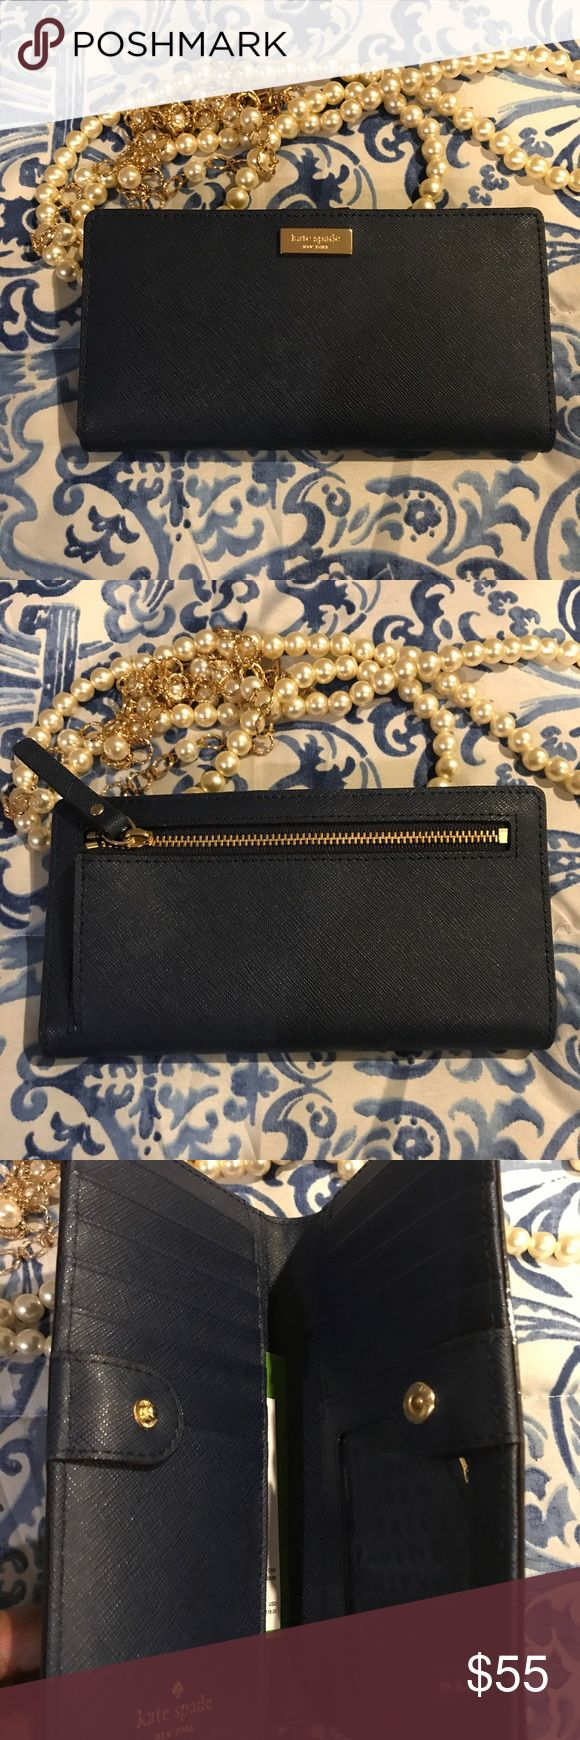 Navy Kate Spade Wallet French Navy Kate Spade Wallet (Newburyport Lane) | Brand New with Tags *Jewelry pictured not included*. 🛍 Proceeds from this sale benefit Suited For Change, a D.C. Non profit Kate Spade Bags Wallets